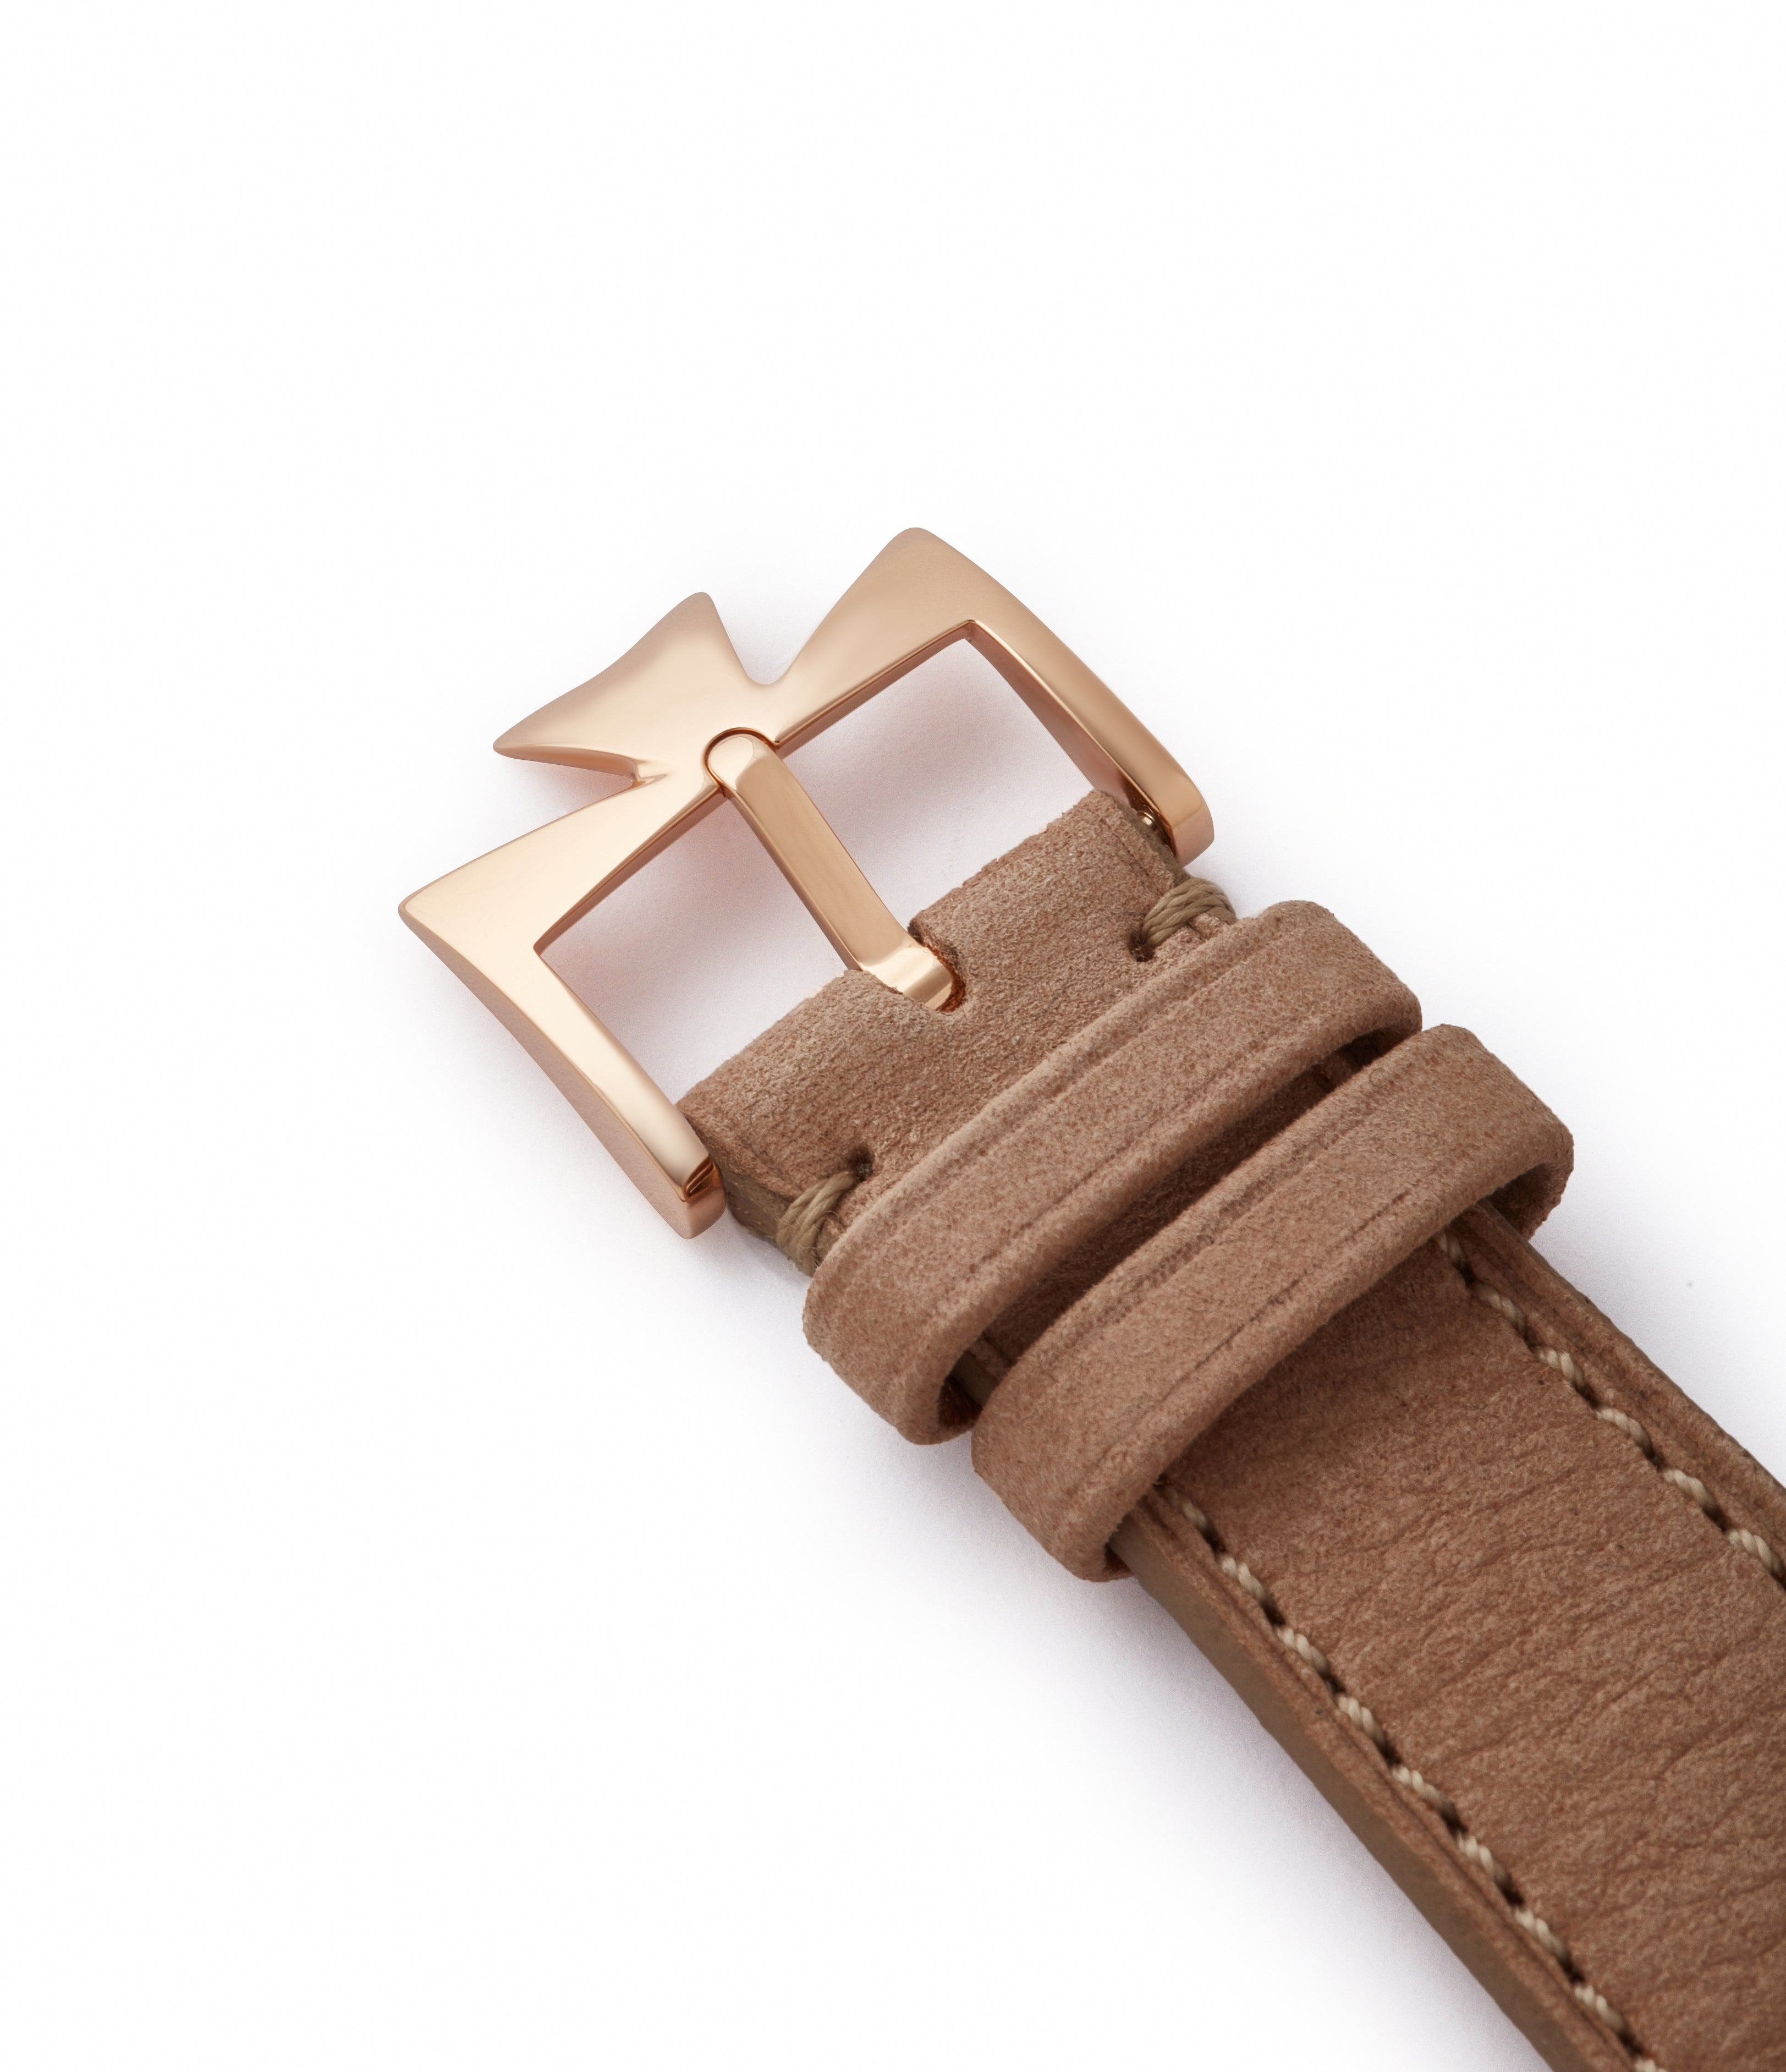 rose gold 18mm tang buckle Vacheron Constantin Historiques Chronometre Royal 1907 86122/000R-9362 rose gold time-only dress watch for sale online at A Collected Man London